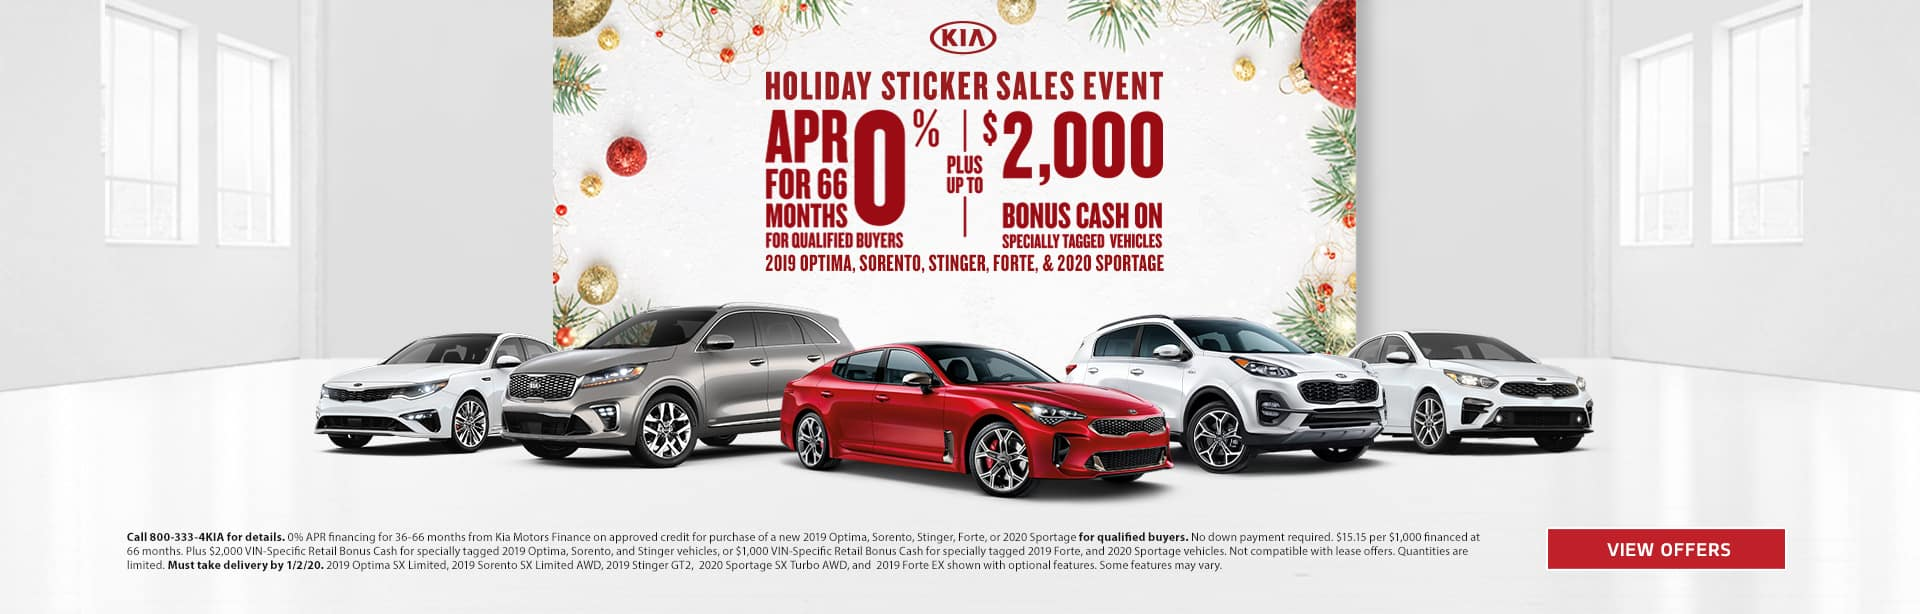 Holiday Sticker Sales Event 2019